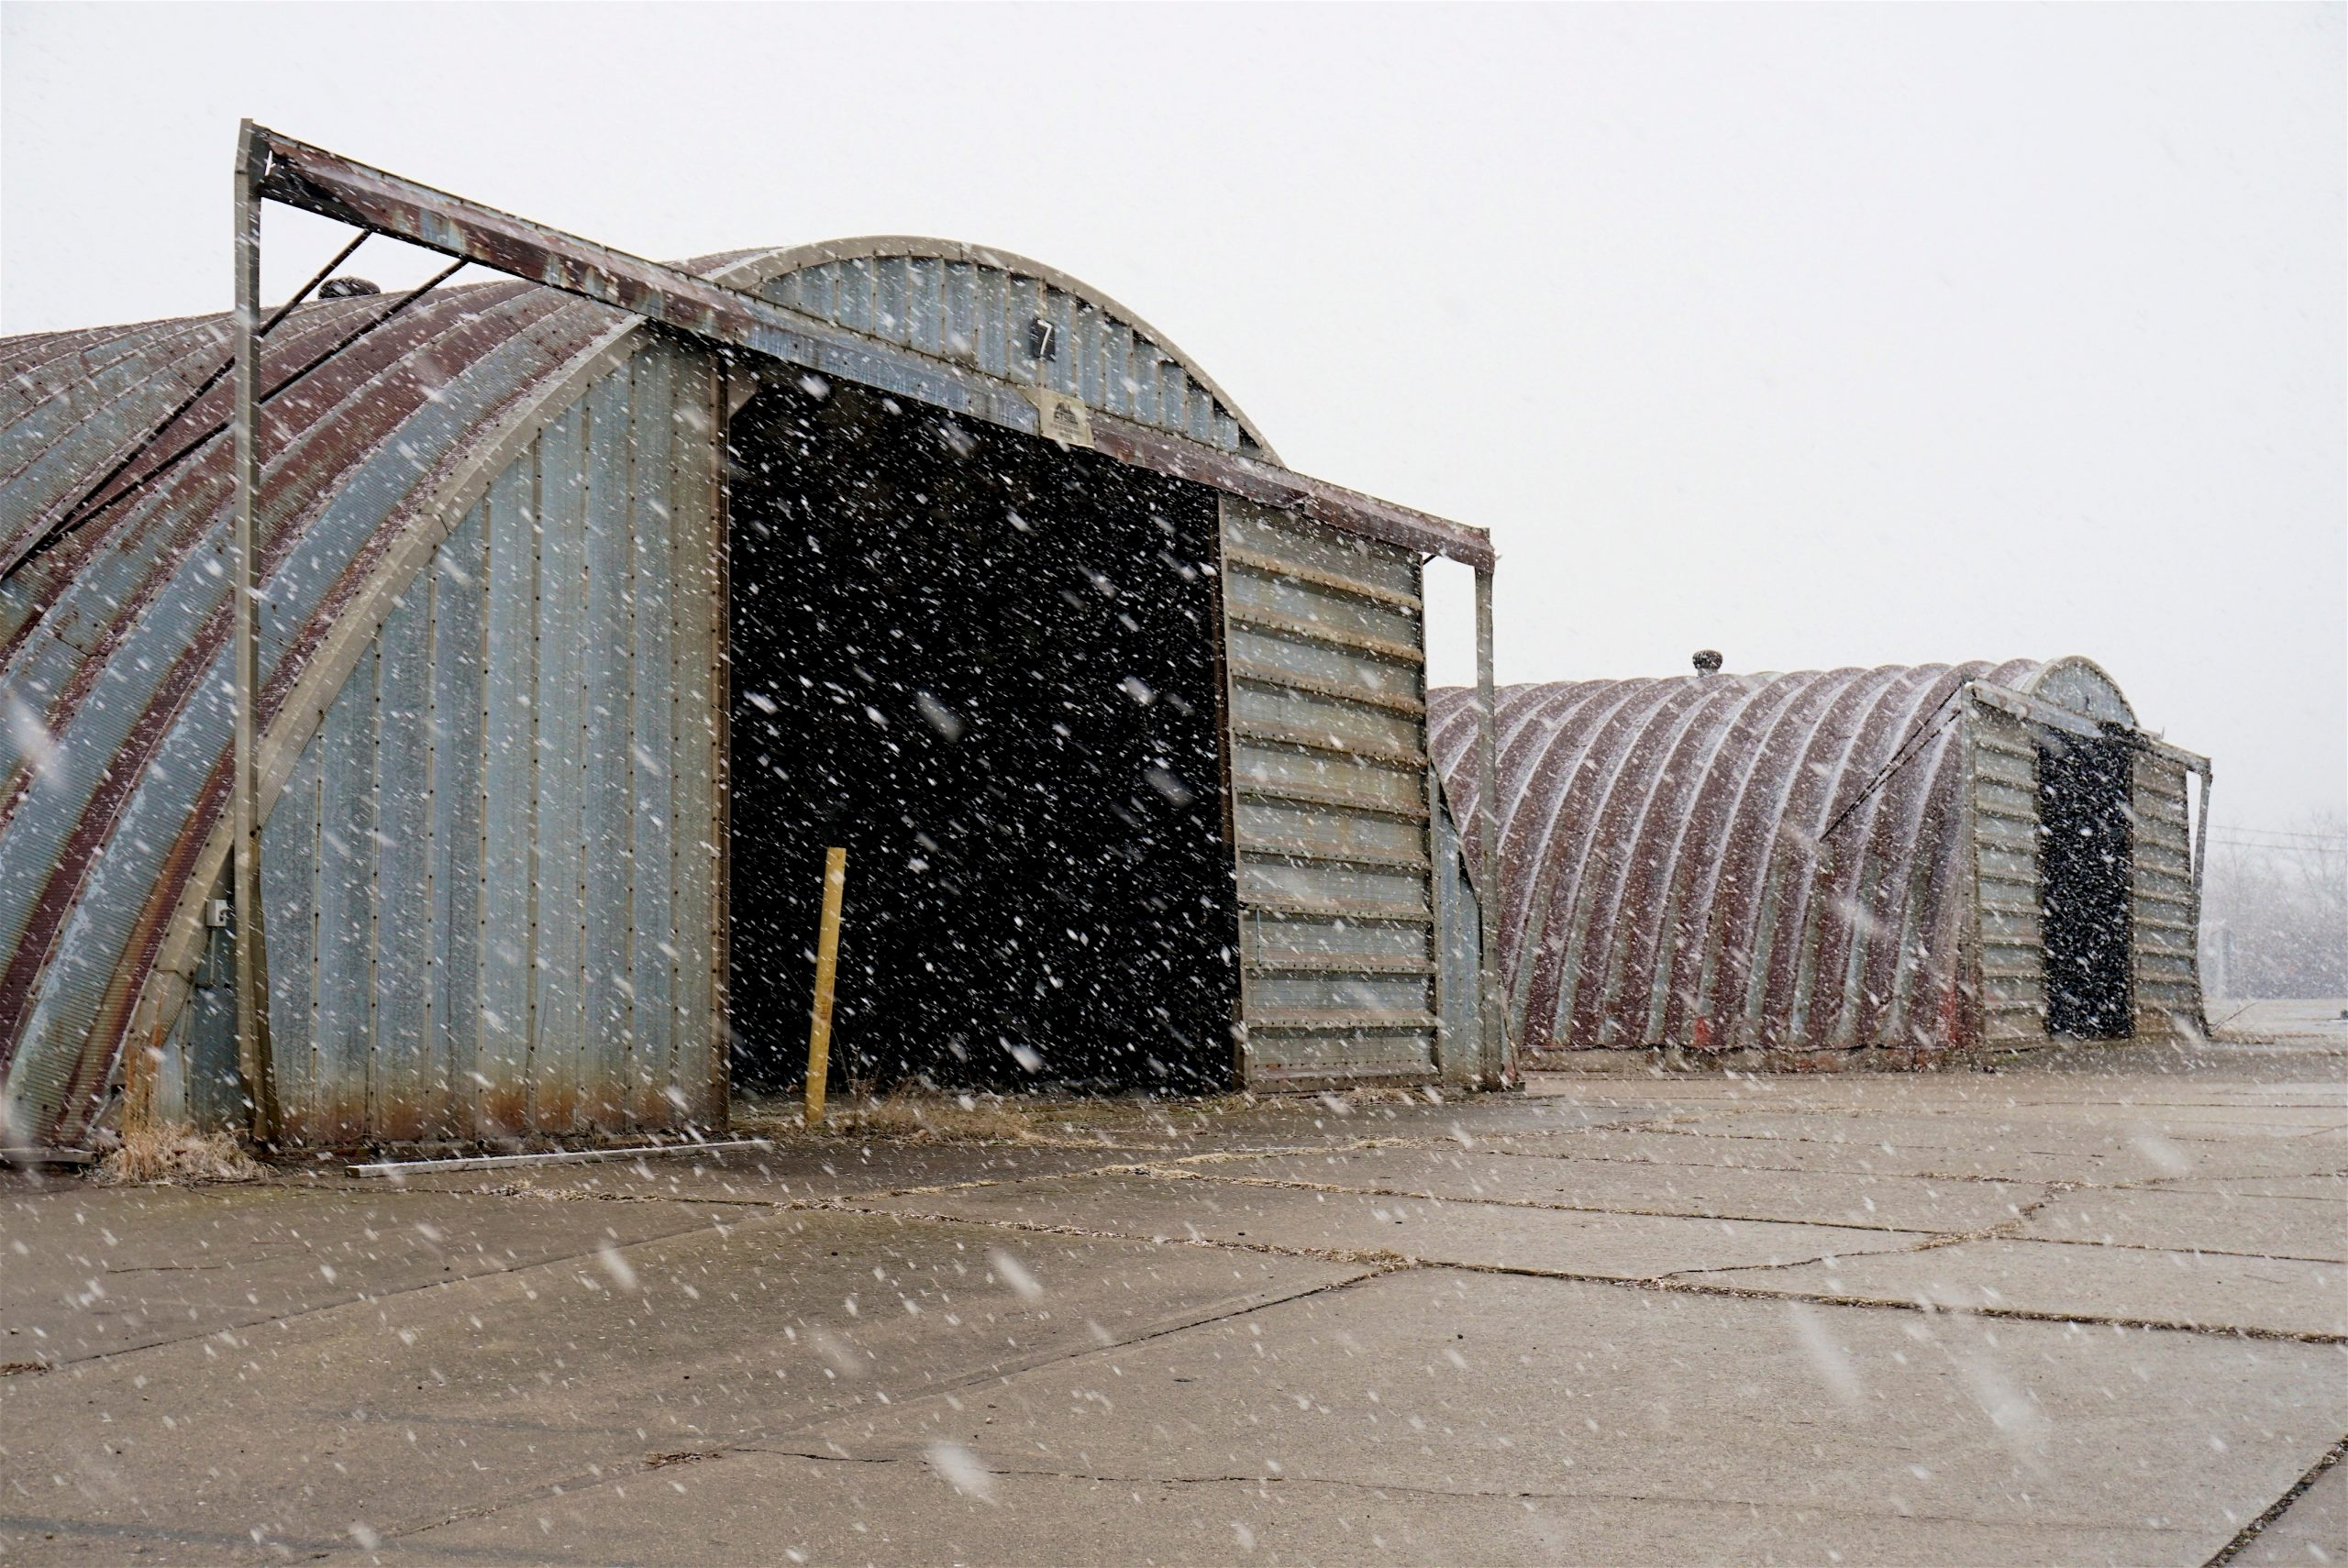 An old hanger with snow coming down